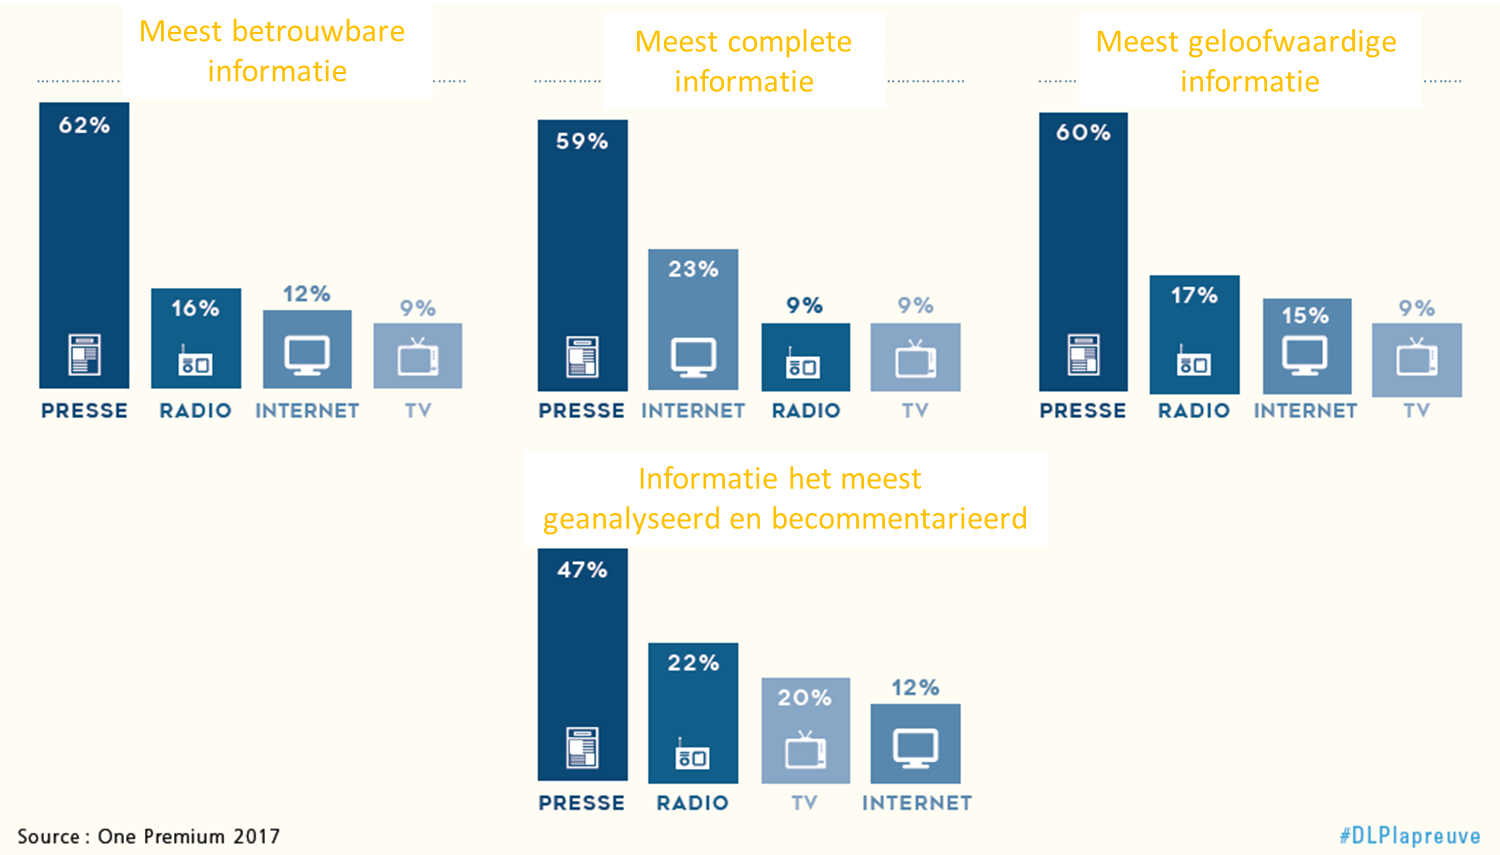 graph reasons for trust in press media NL